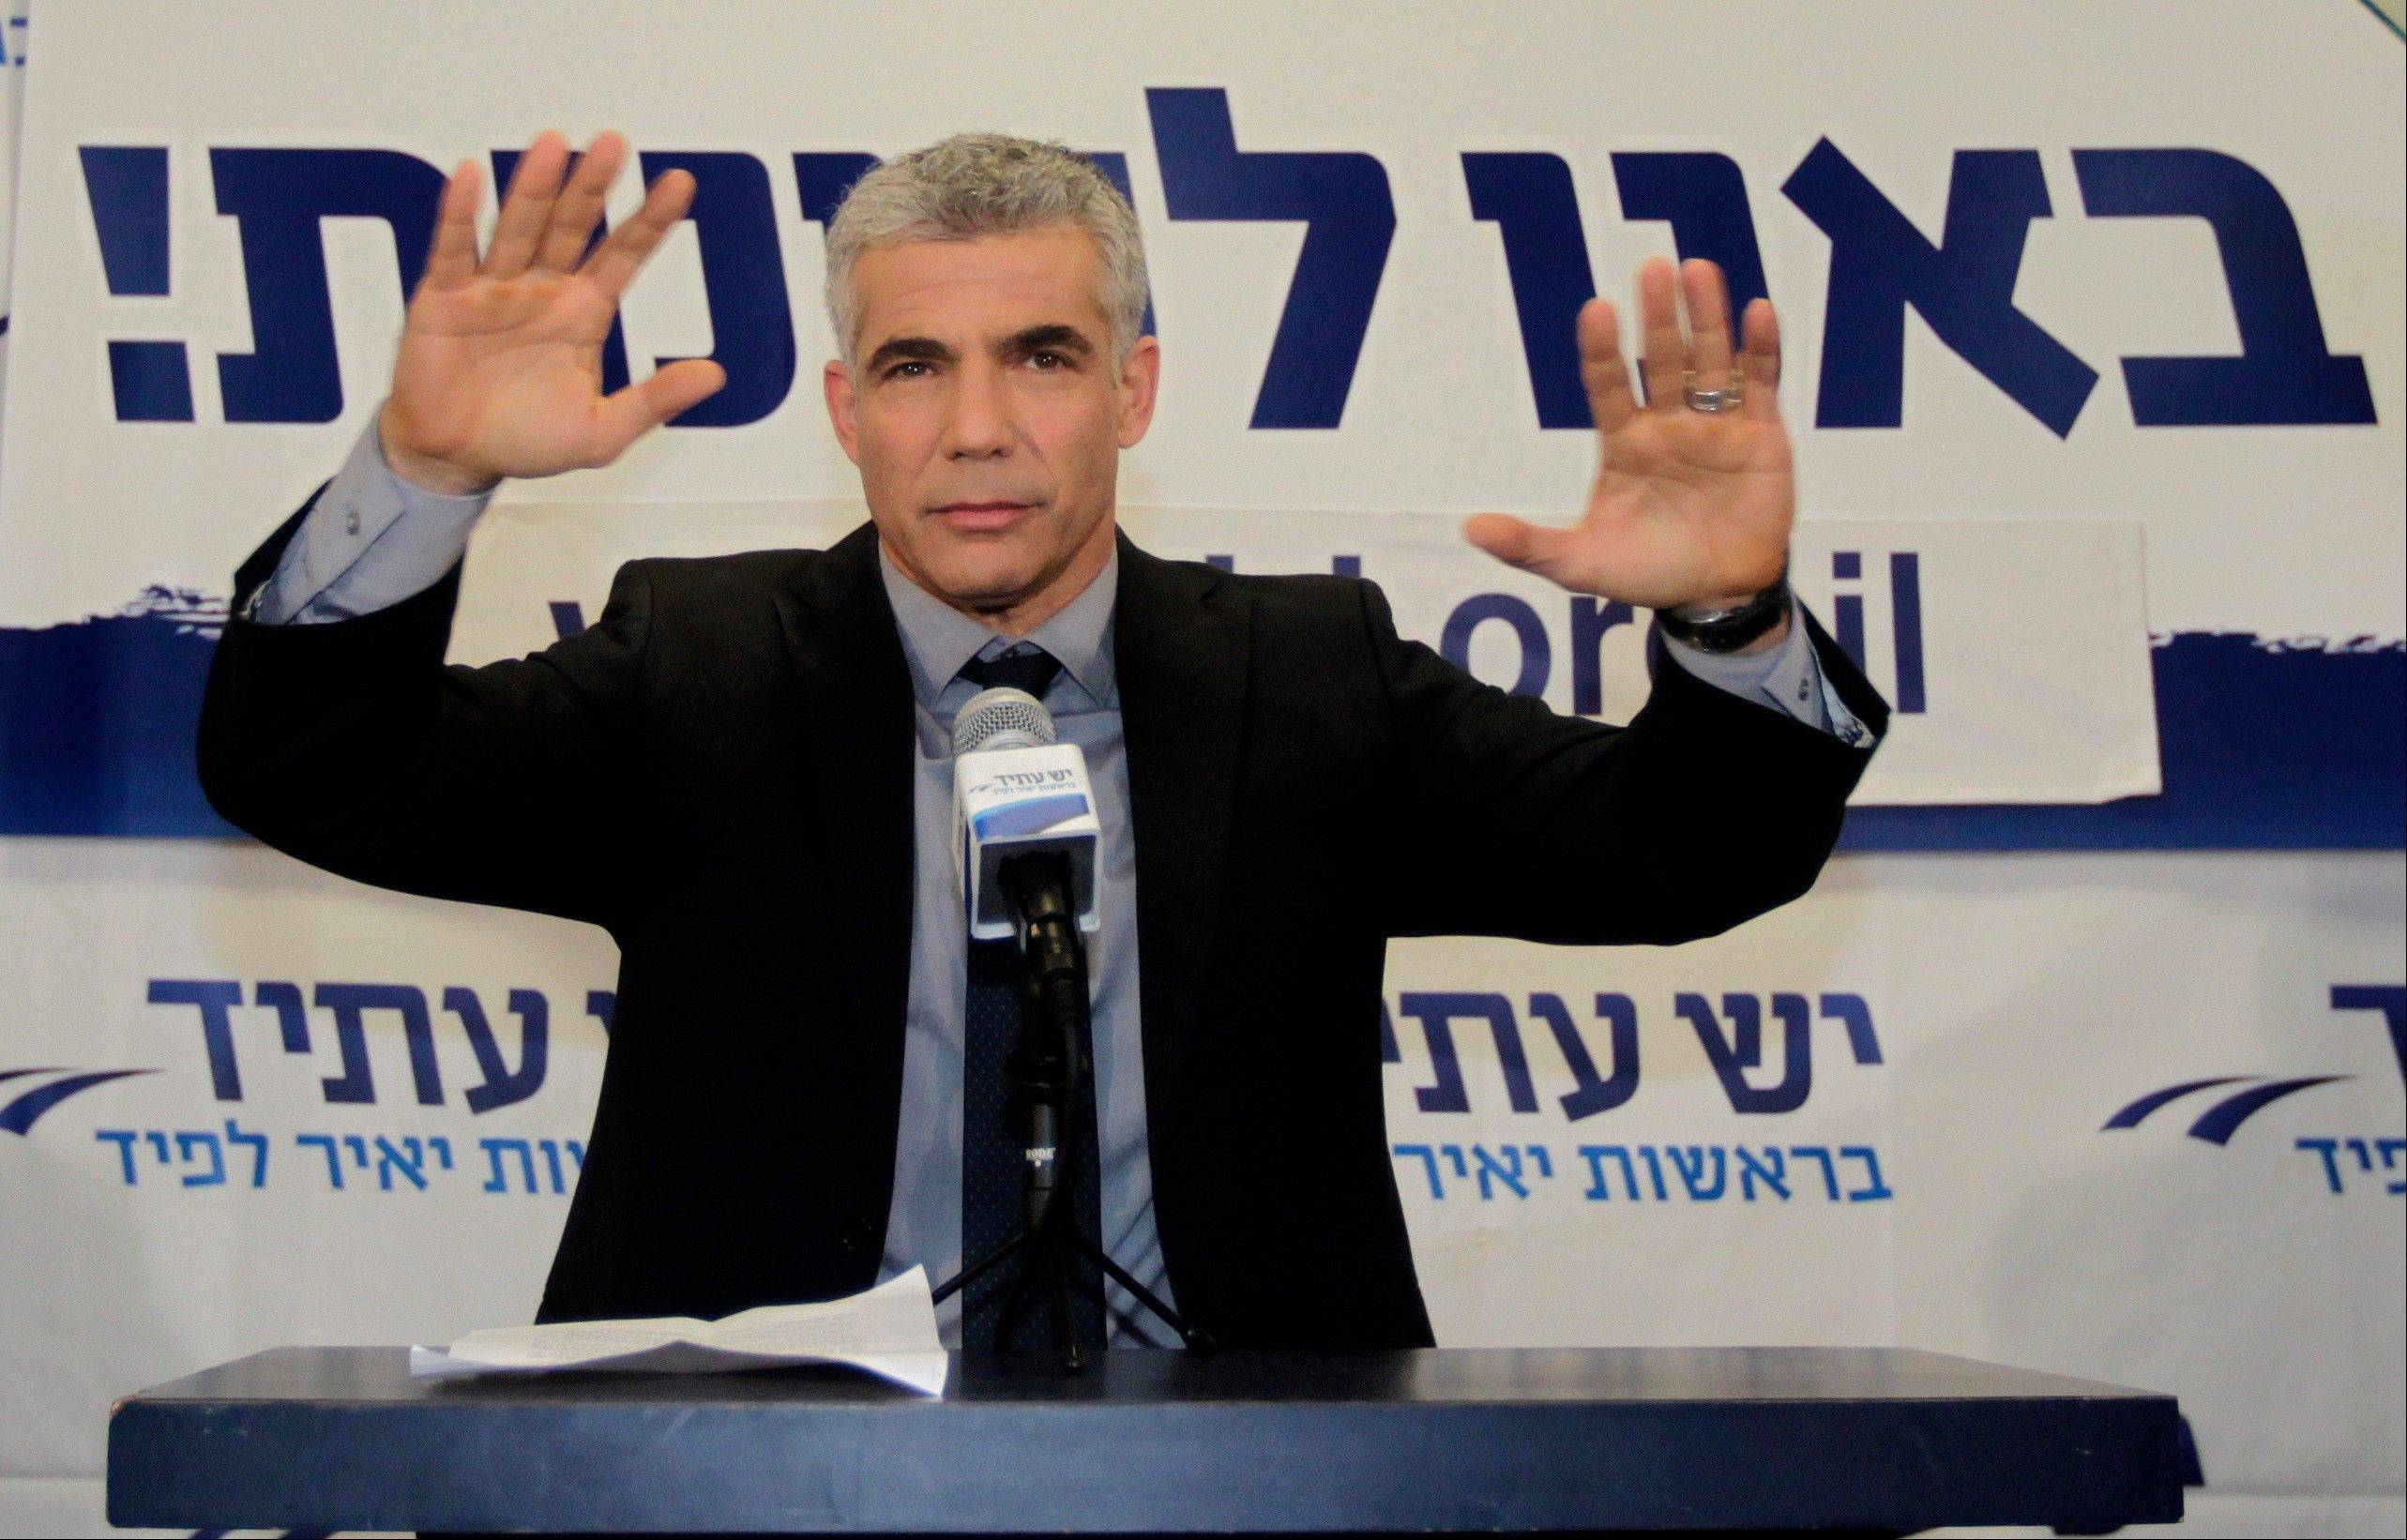 It appears Prime Minister Benjamin Netanyahu�s future in office may depend on newcomer Yair Lapid, above. Lapid�s Yesh Atid, or There is a Future, emerged as the second-largest party in Israel�s parliament after the prime minister�s bloc, giving the 49-year-old former journalist unexpectedly strong leverage in upcoming coalition negotiations.